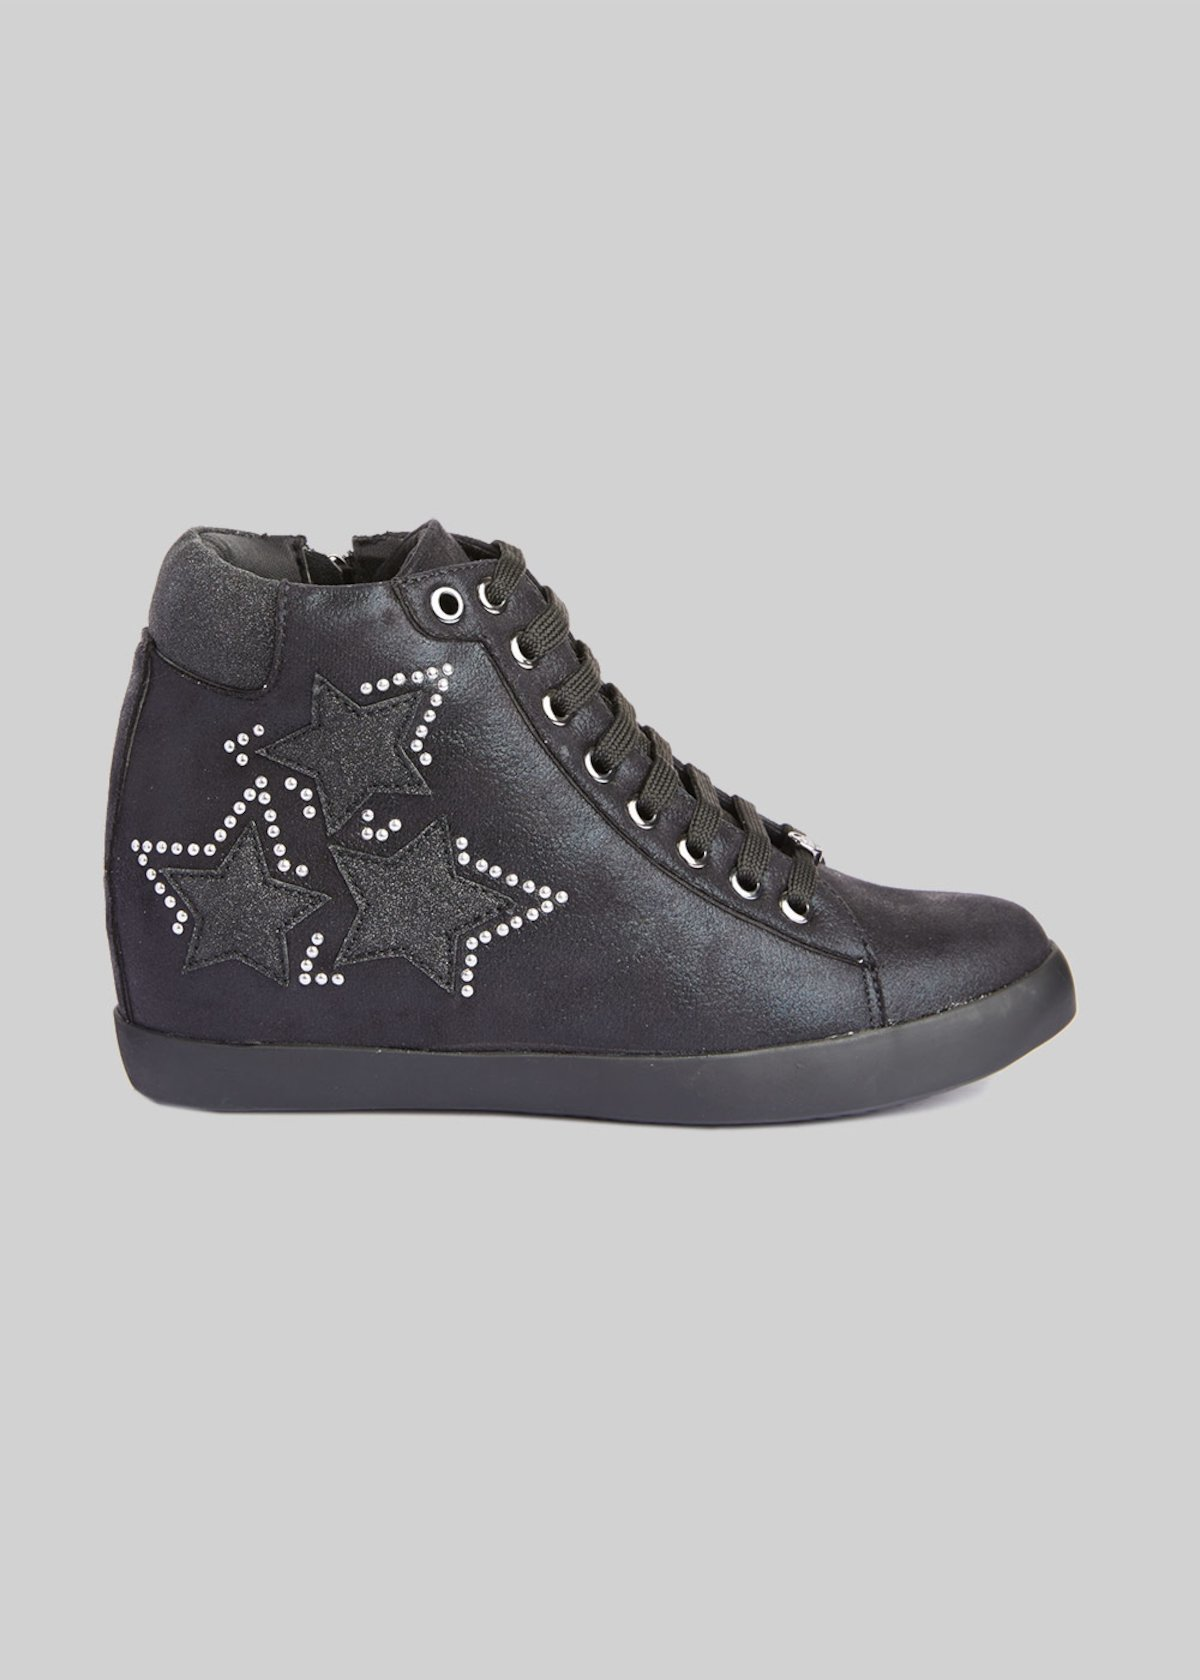 Faux leather and Microfiber sneakers with stars detail